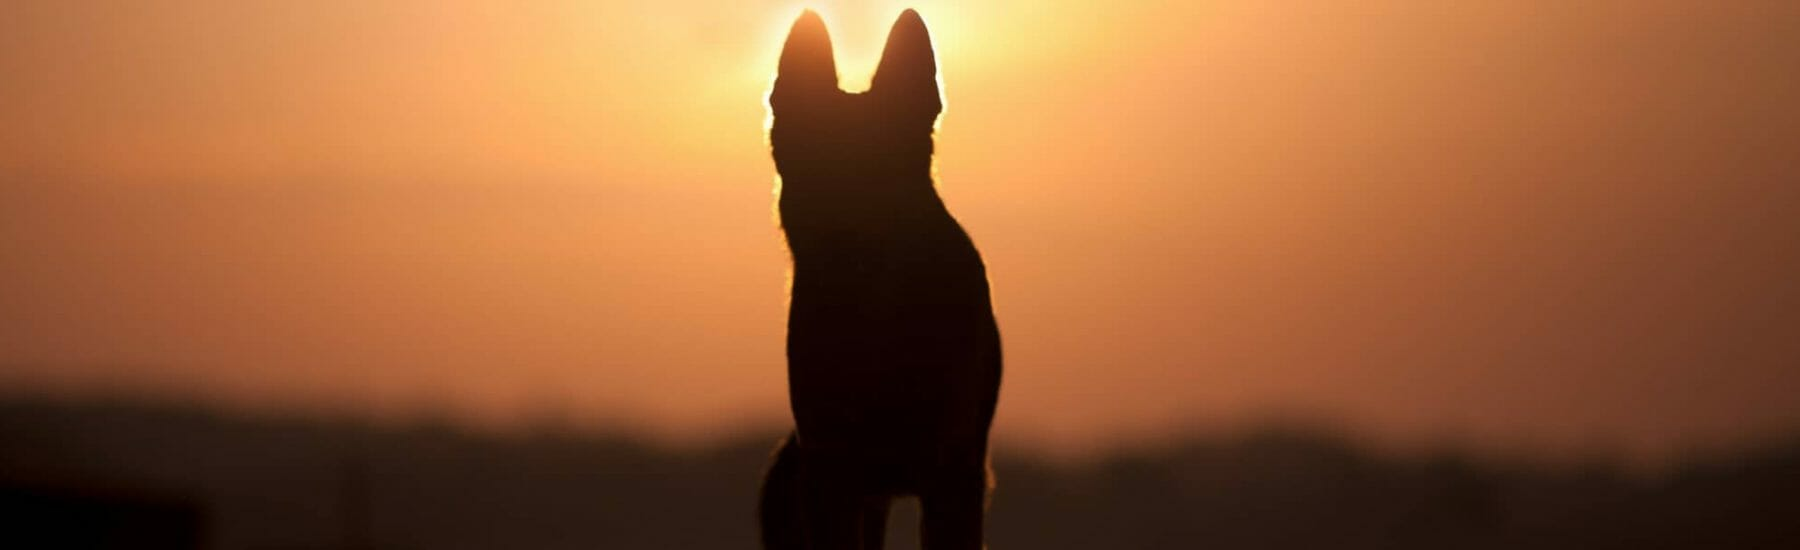 Silhouette of a dog in the sunset